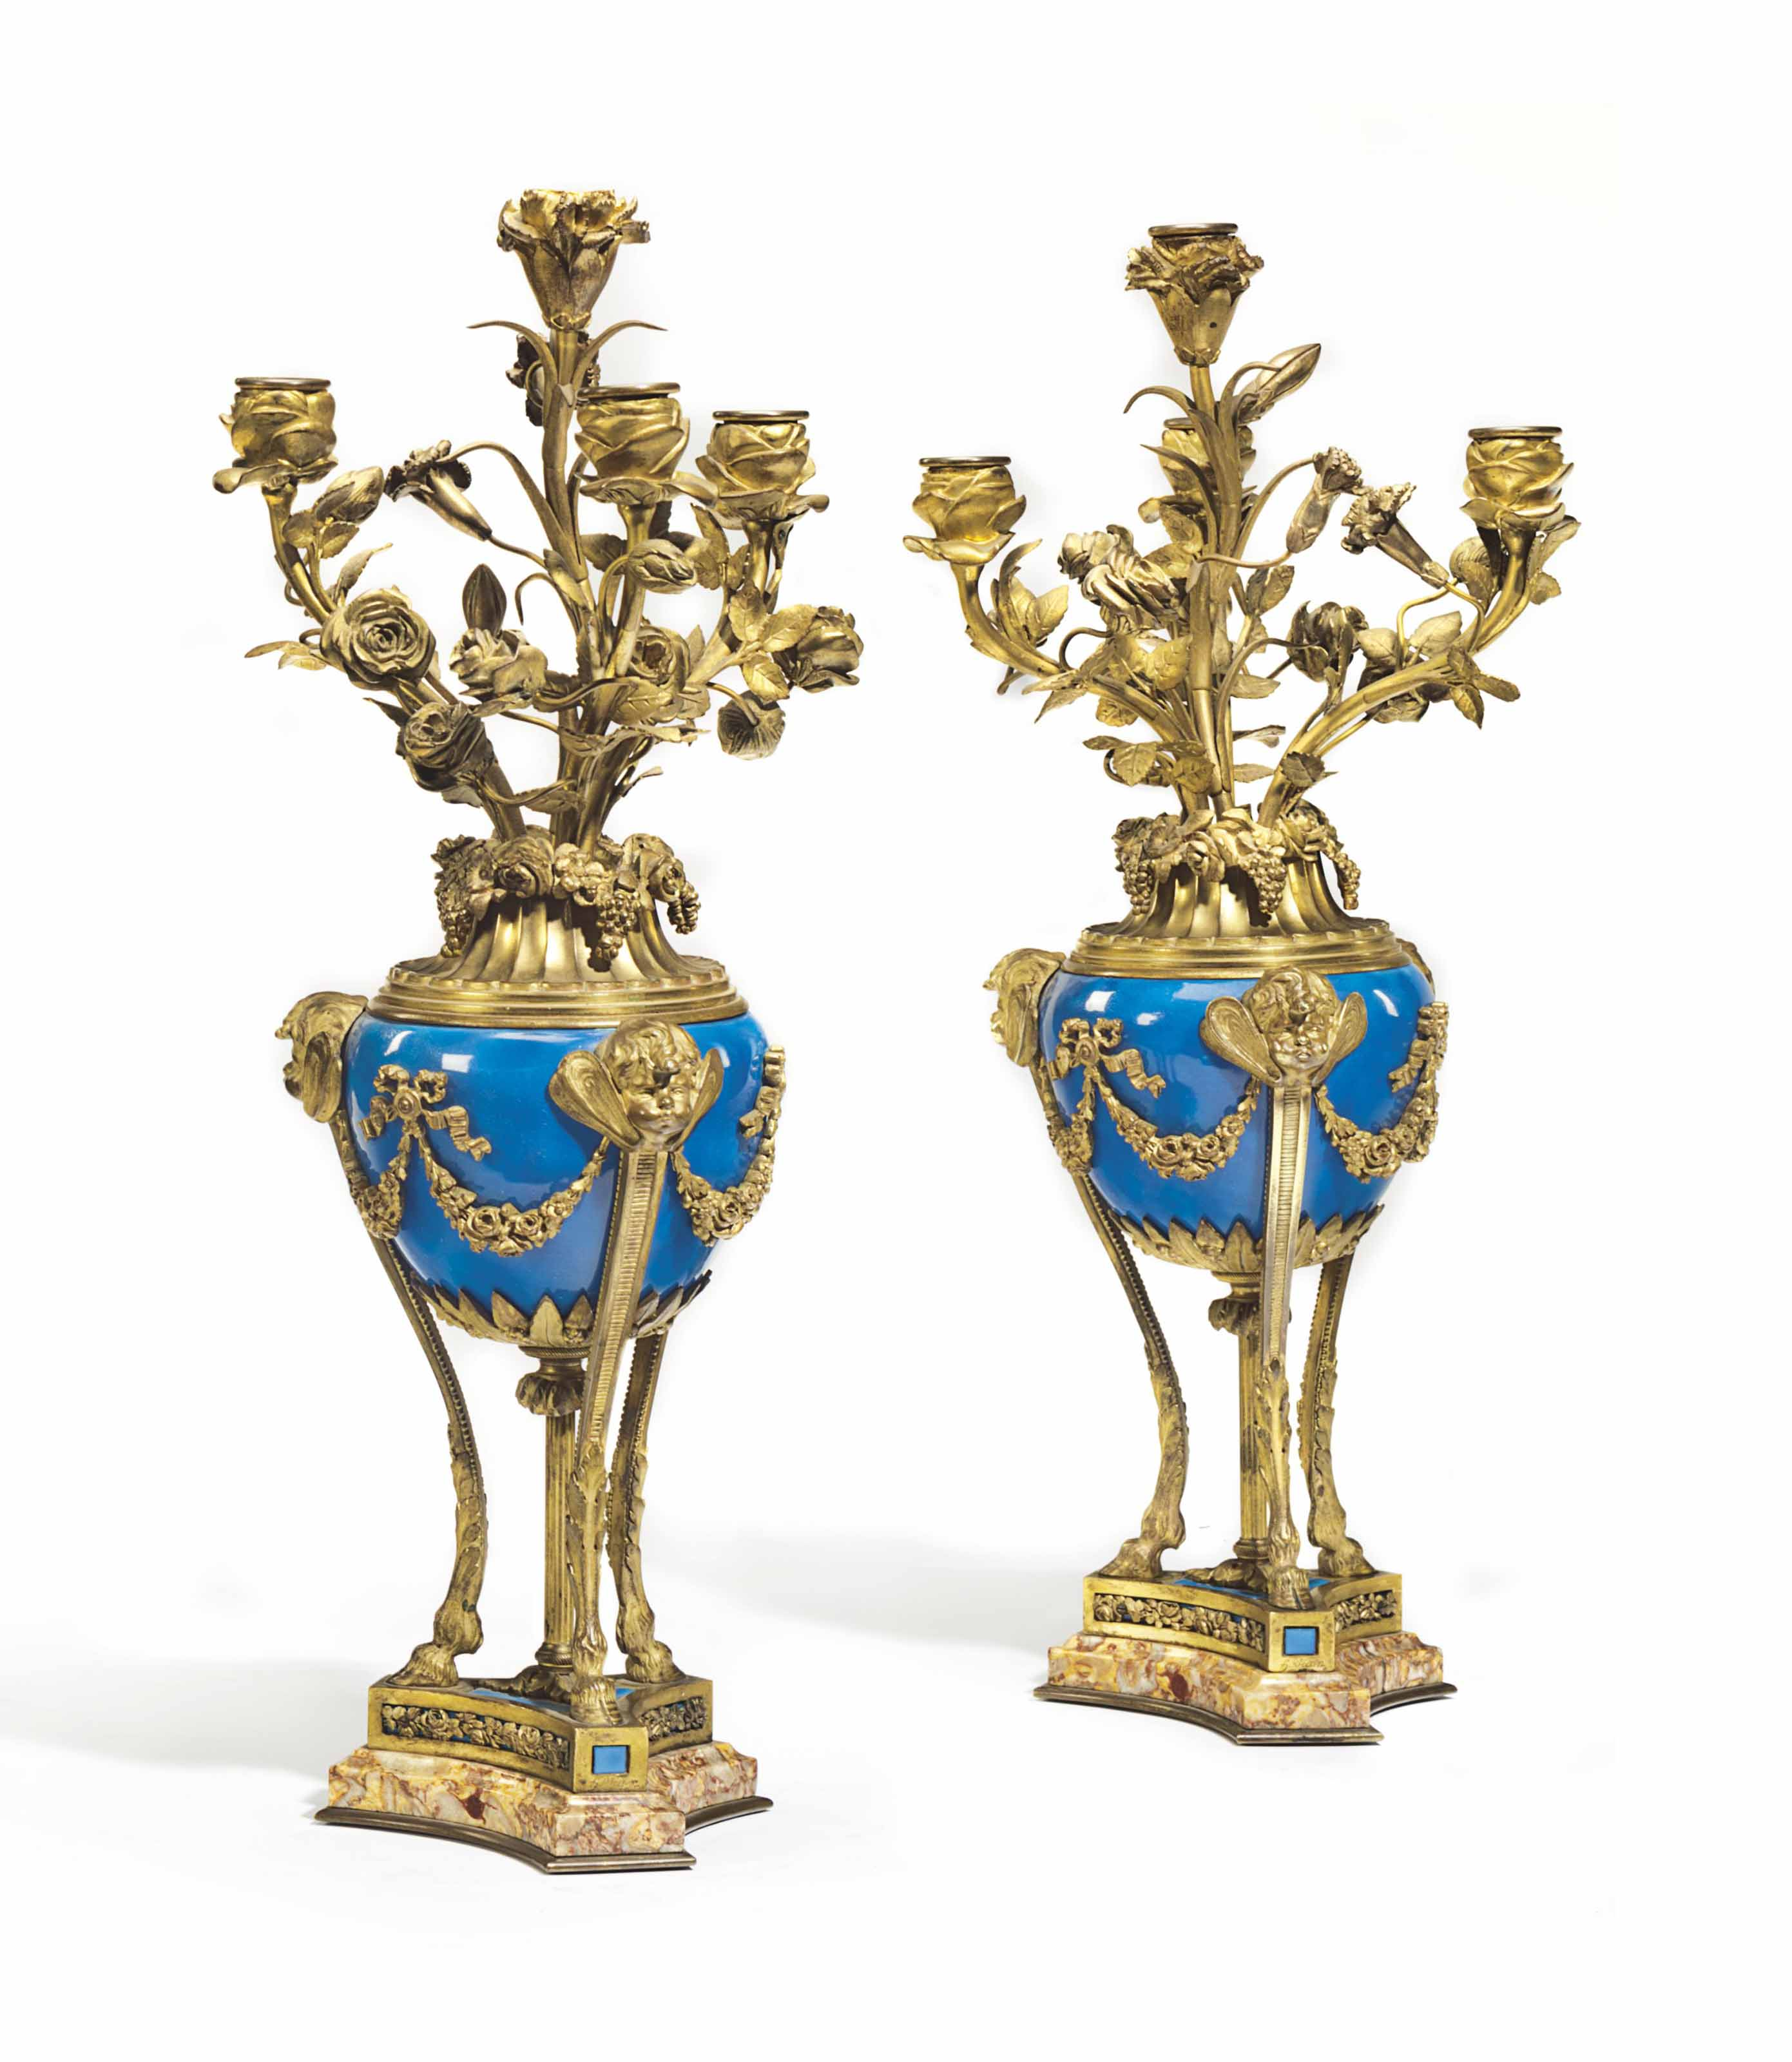 A PAIR OF A FRENCH ORMOLU-MOUNTED AND TURQUOISE-GROUND FOUR-LIGHT CANDELABRA